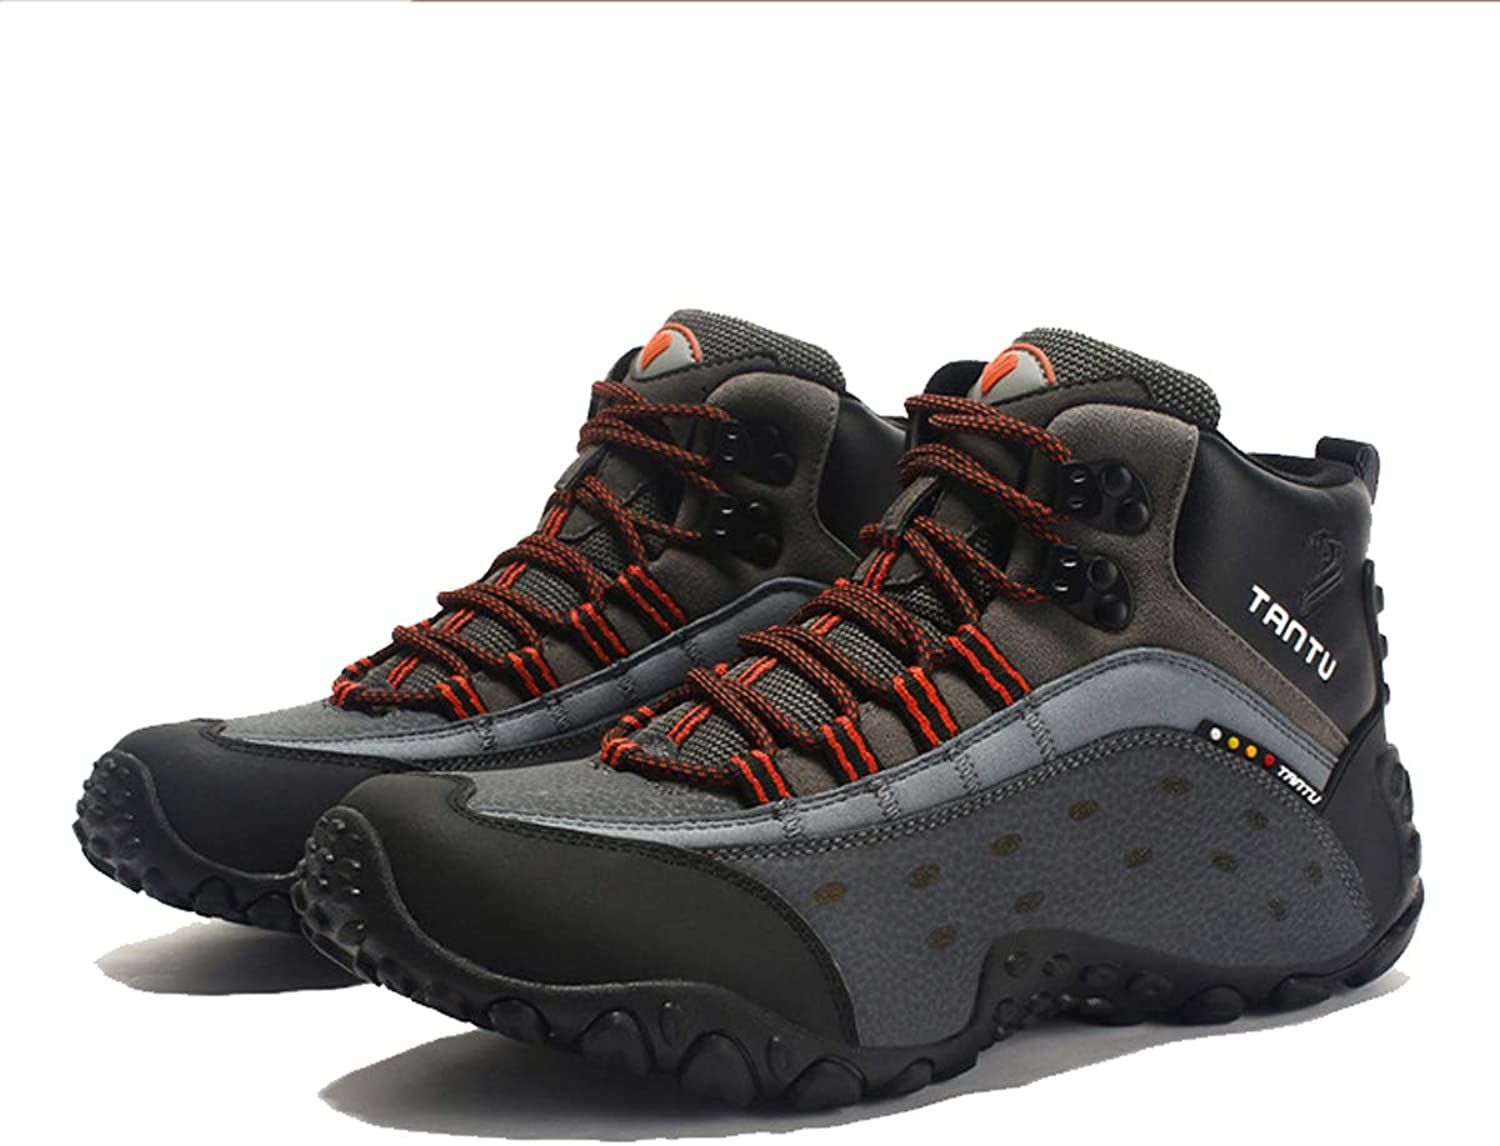 Mens Training Boots Lightweight Hiking shoes for Autumn and Winter Desert Boots Non Slip Breathable Outdoor shoes,B,42EU